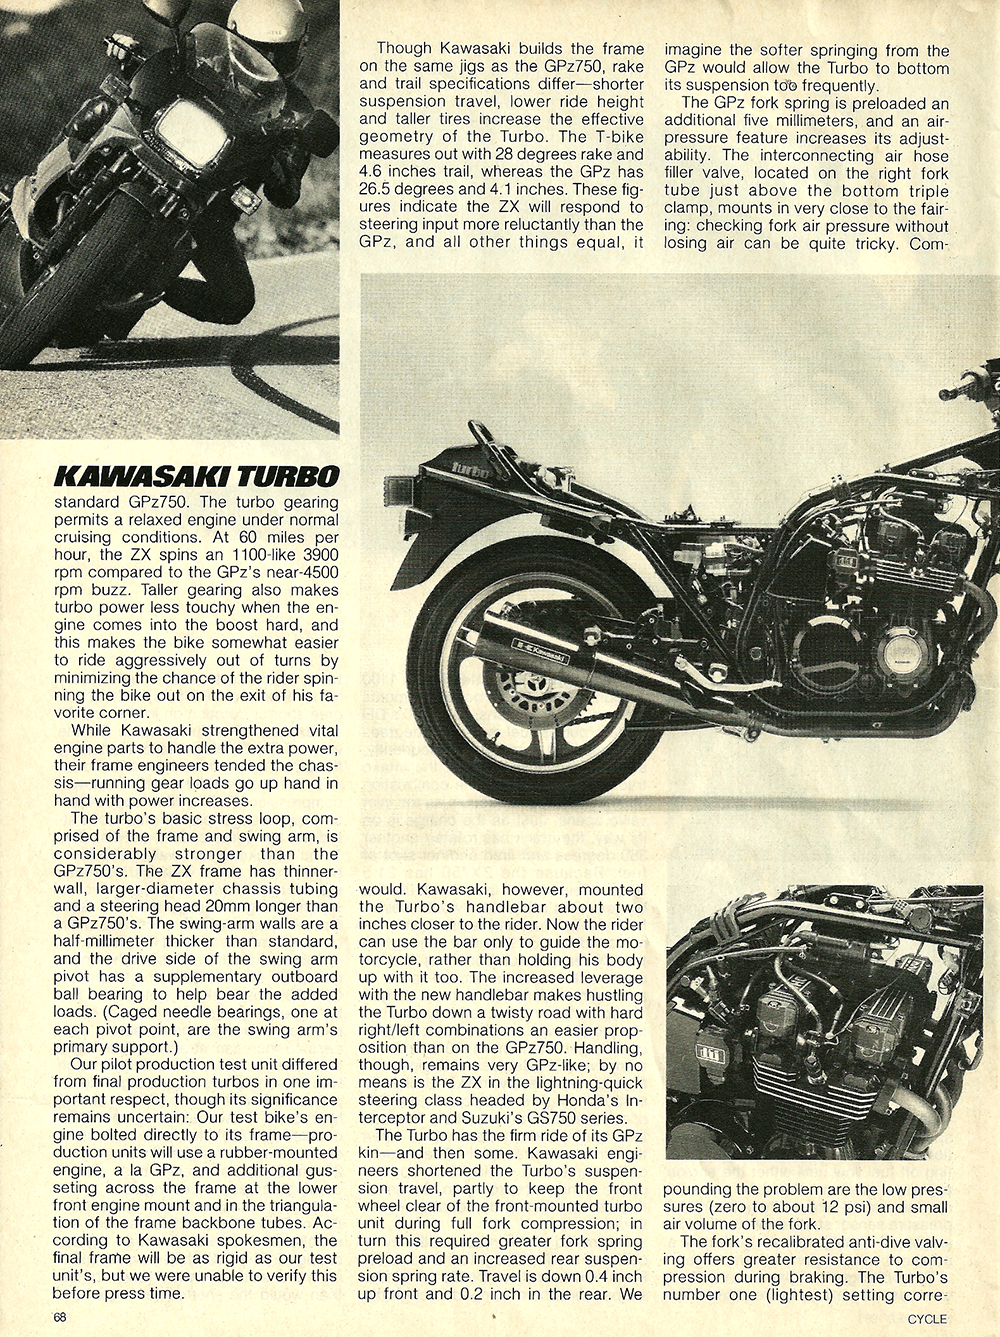 1984 Kawasaki ZX750E1 turbo road test 5.jpg